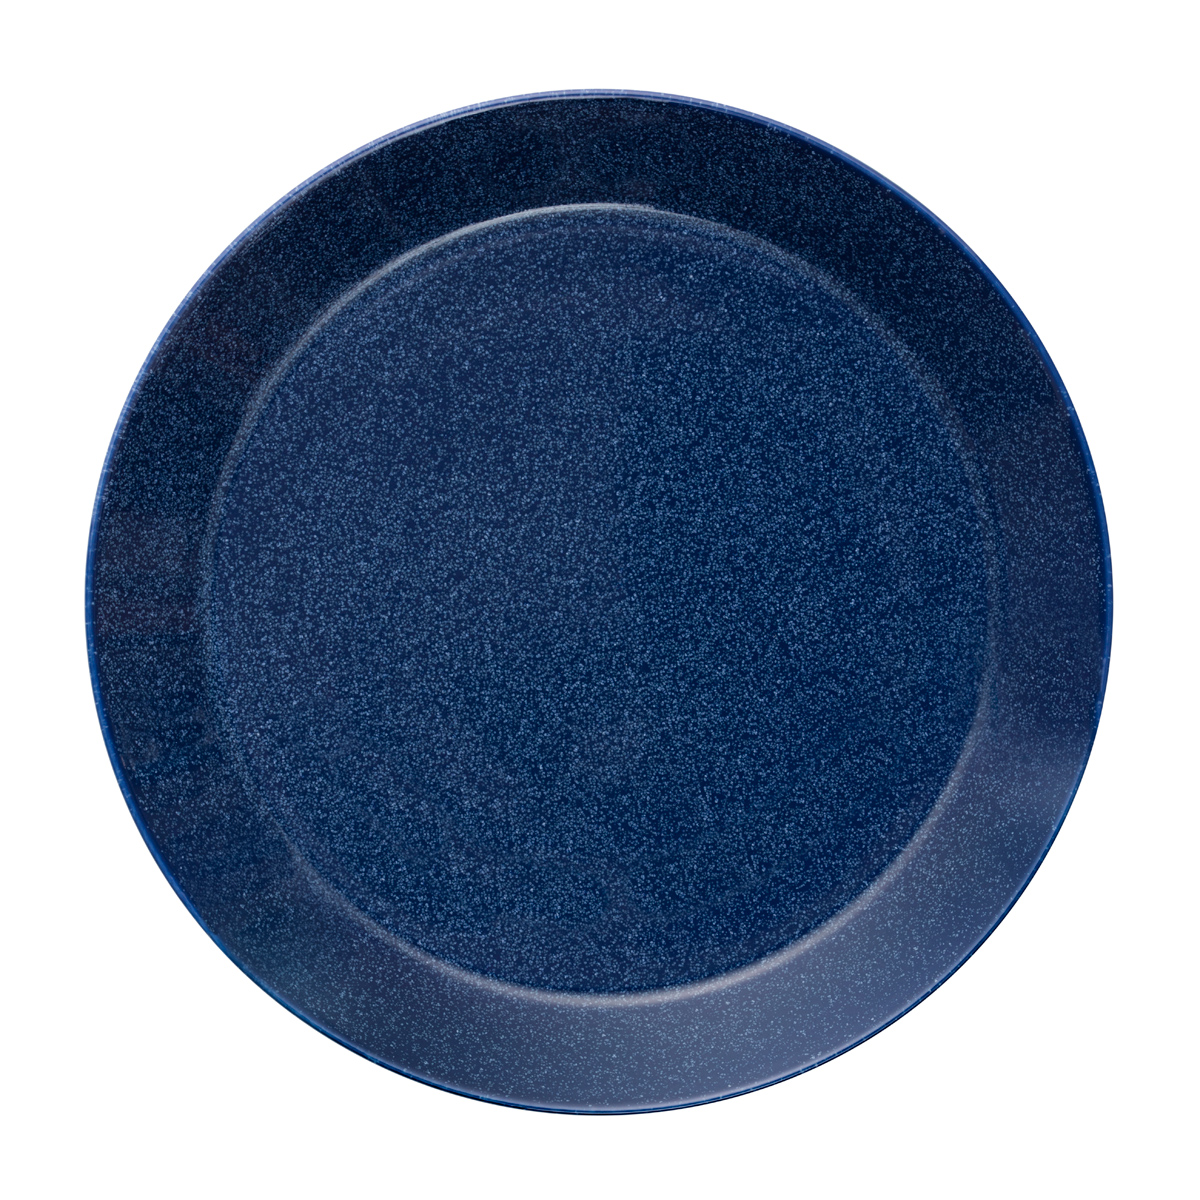 iittala teema dotted blue dinner plate iittala teema dotted blue dinnerware. Black Bedroom Furniture Sets. Home Design Ideas